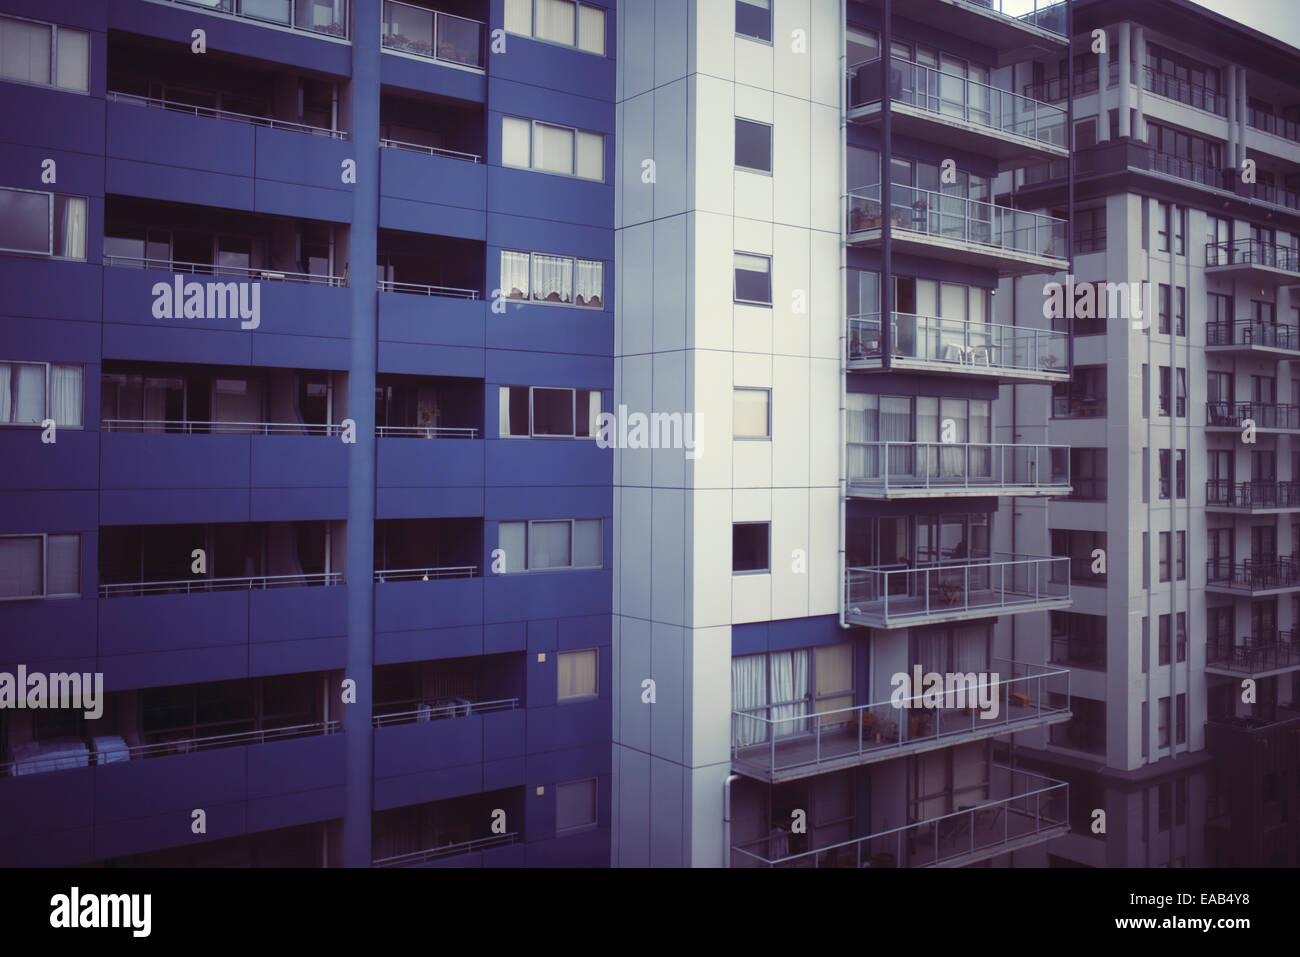 Tower blocks, flats, apartments, in Auckland, New Zealand - Stock Image